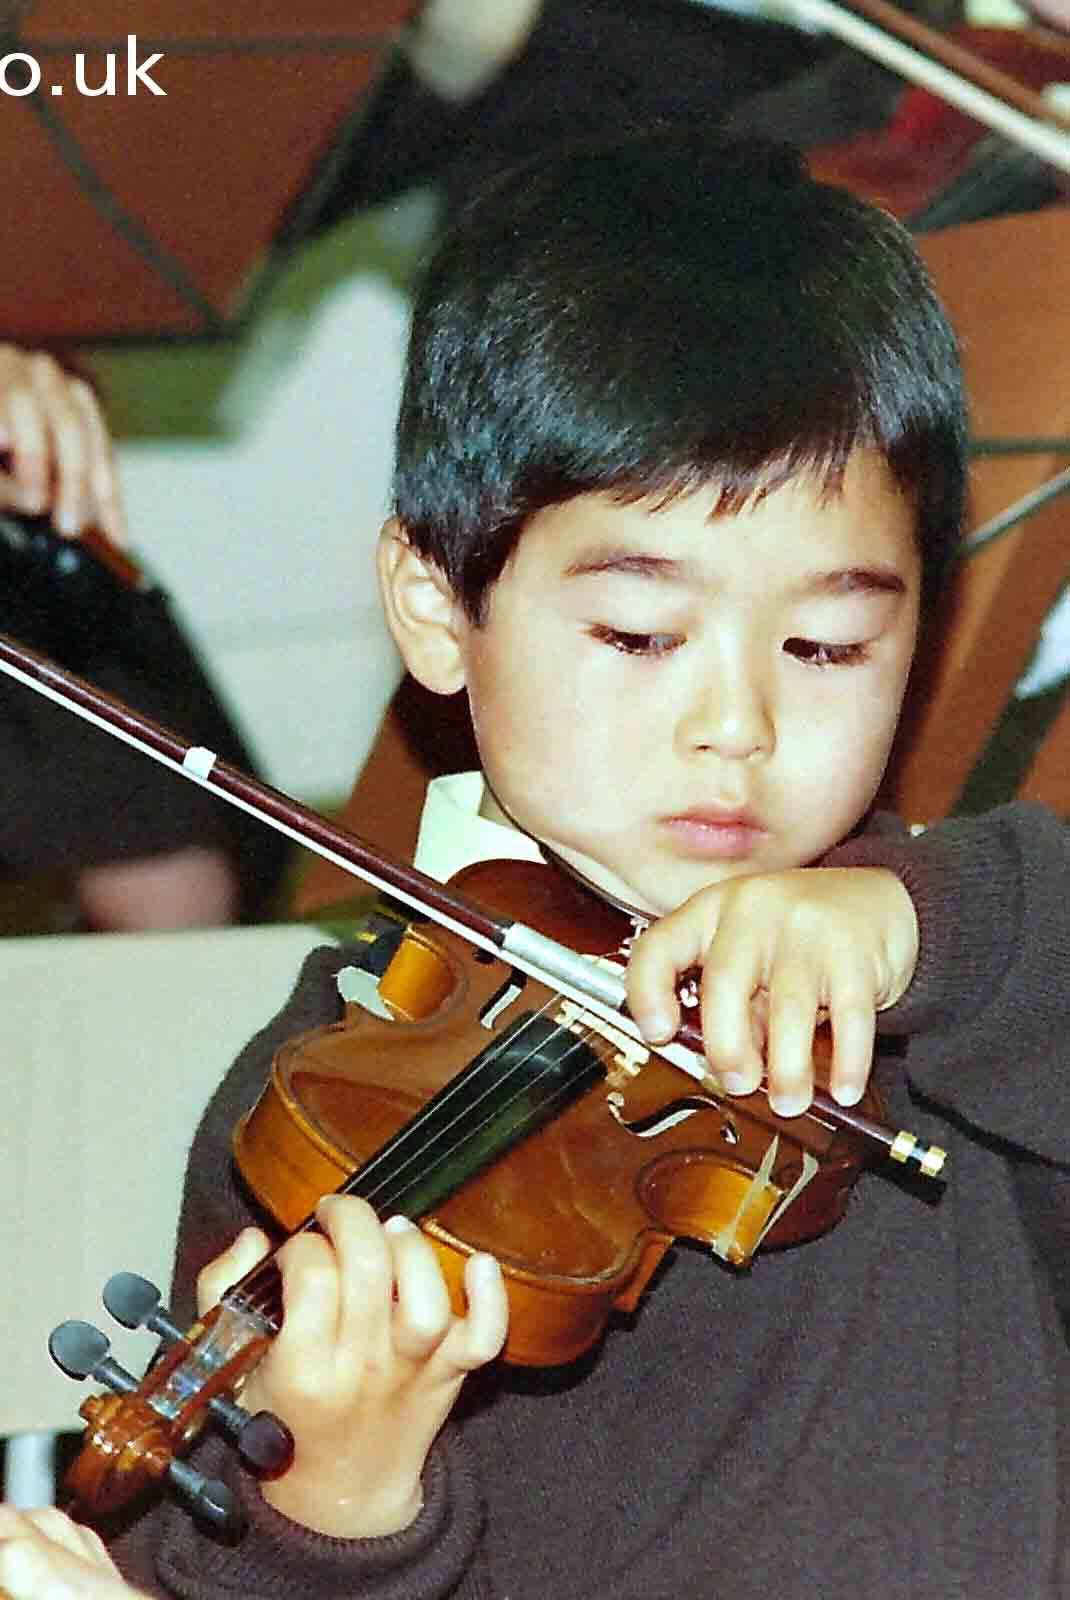 My beautiful picture of young violinist, Cheam.